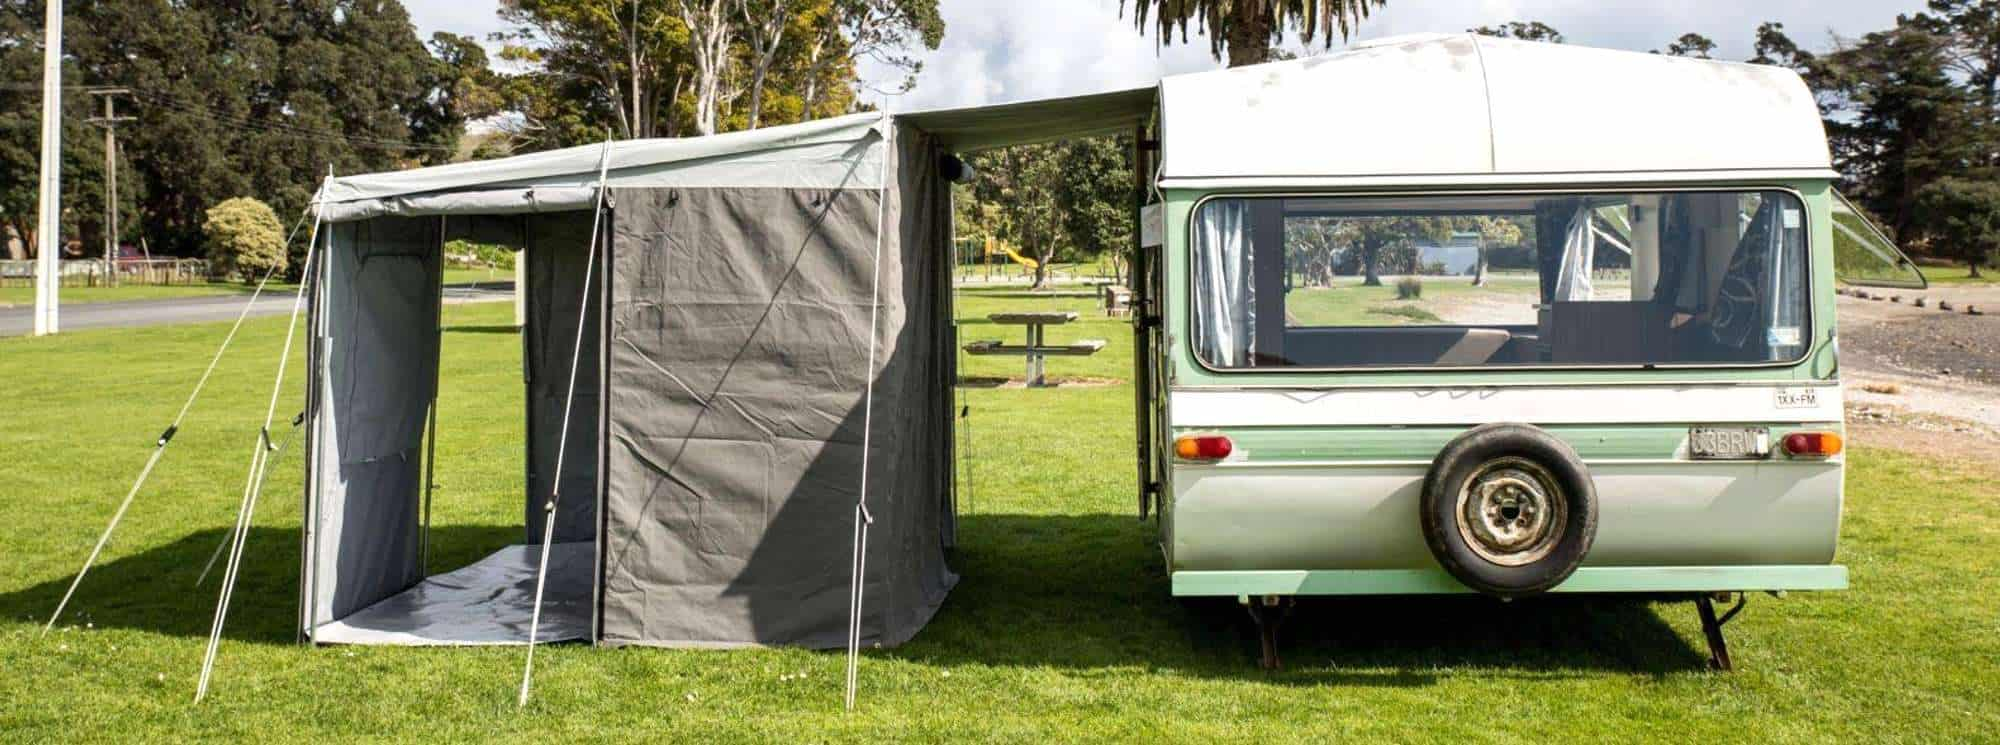 Our hugely versatile walk-thru awnings for nz and eu caravans, by intenze.co.nz